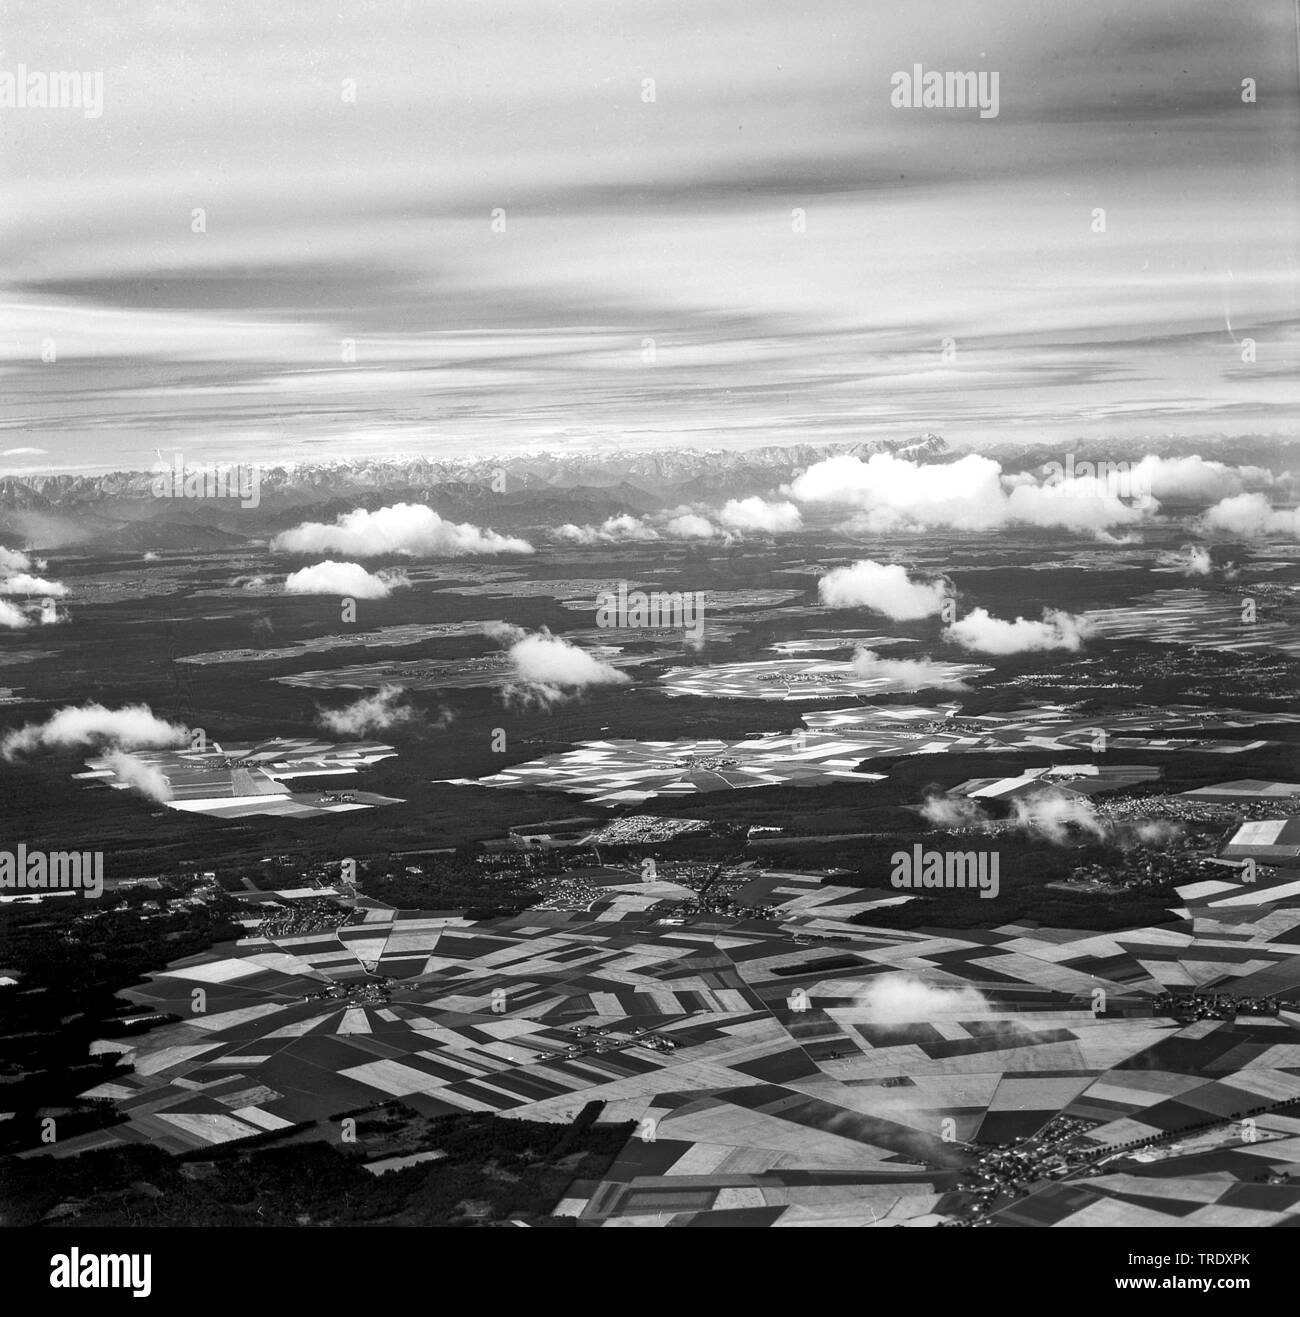 field at Putzbrunn near Munich, aerial photo from the year 1961, Germany, Bavaria, Putzbrunn - Stock Image